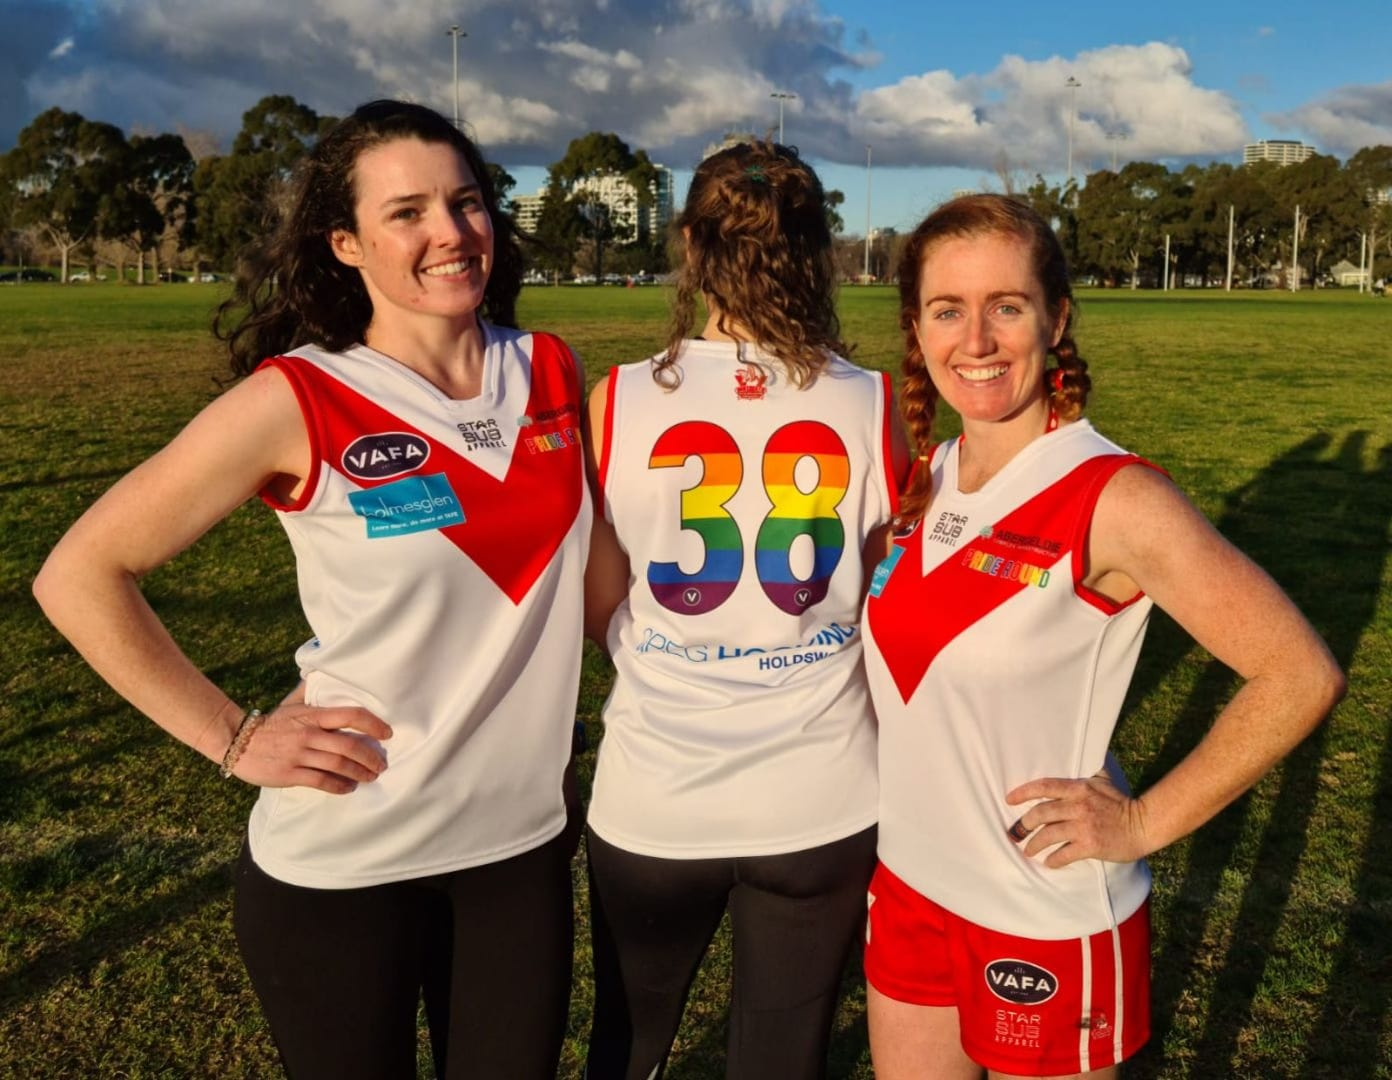 Women of the SMDF Team posing with their new rainbow team shirts